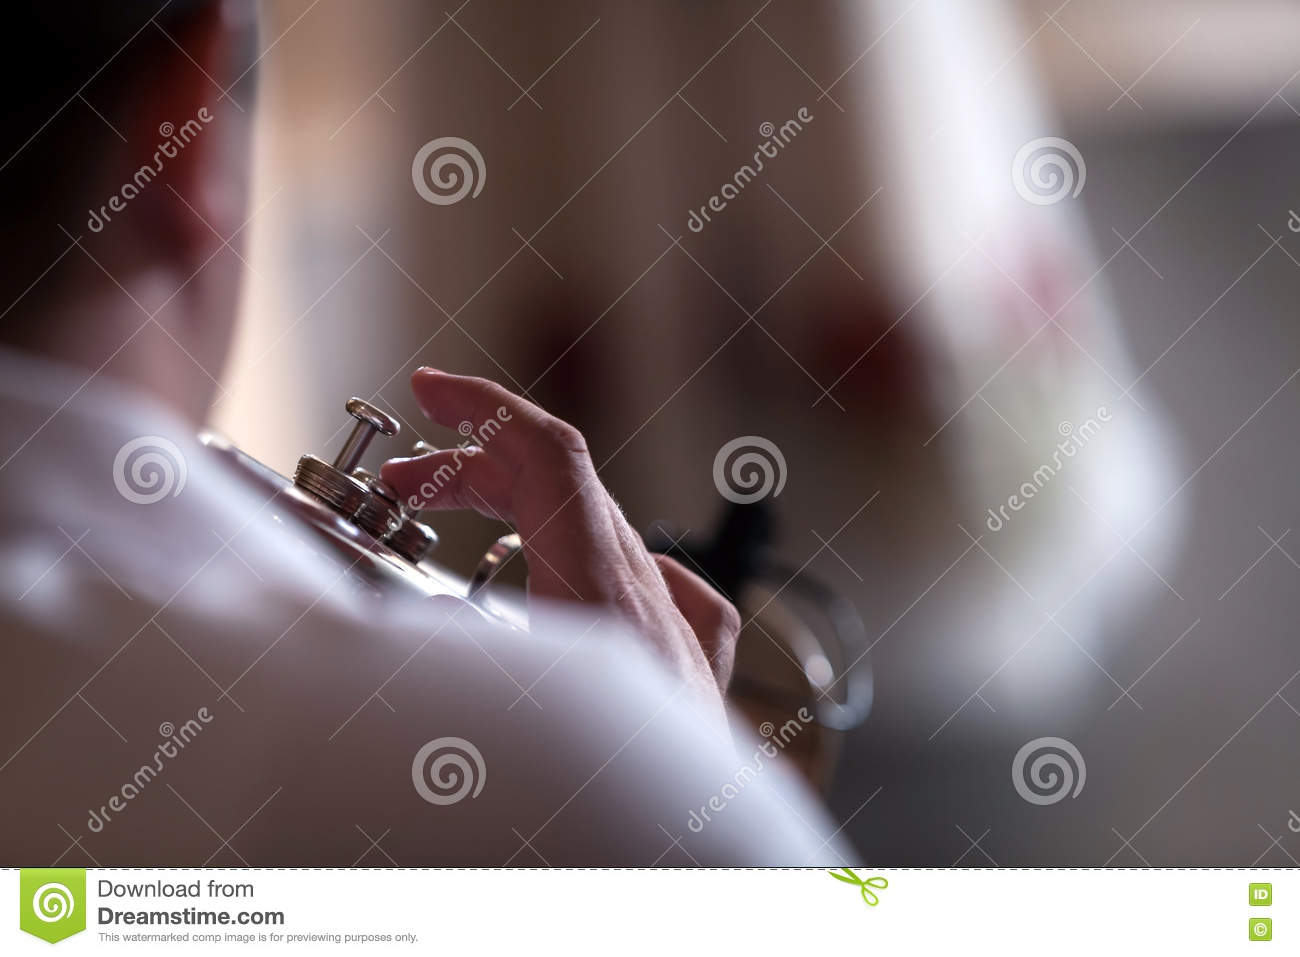 Trumpet player stock image  Image of rhythm, closeup - 80527913